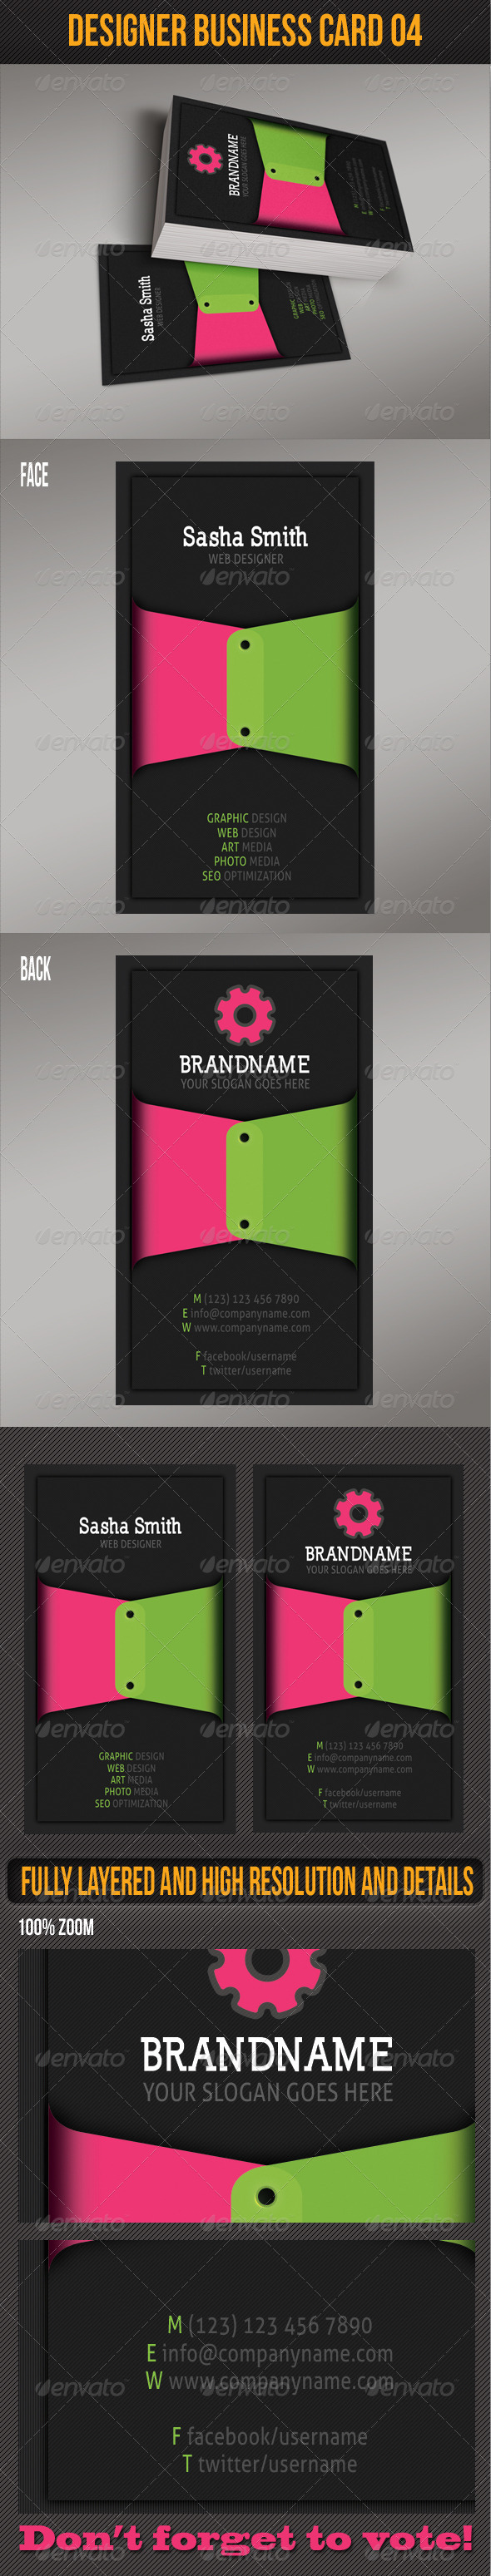 Business Card for Designers